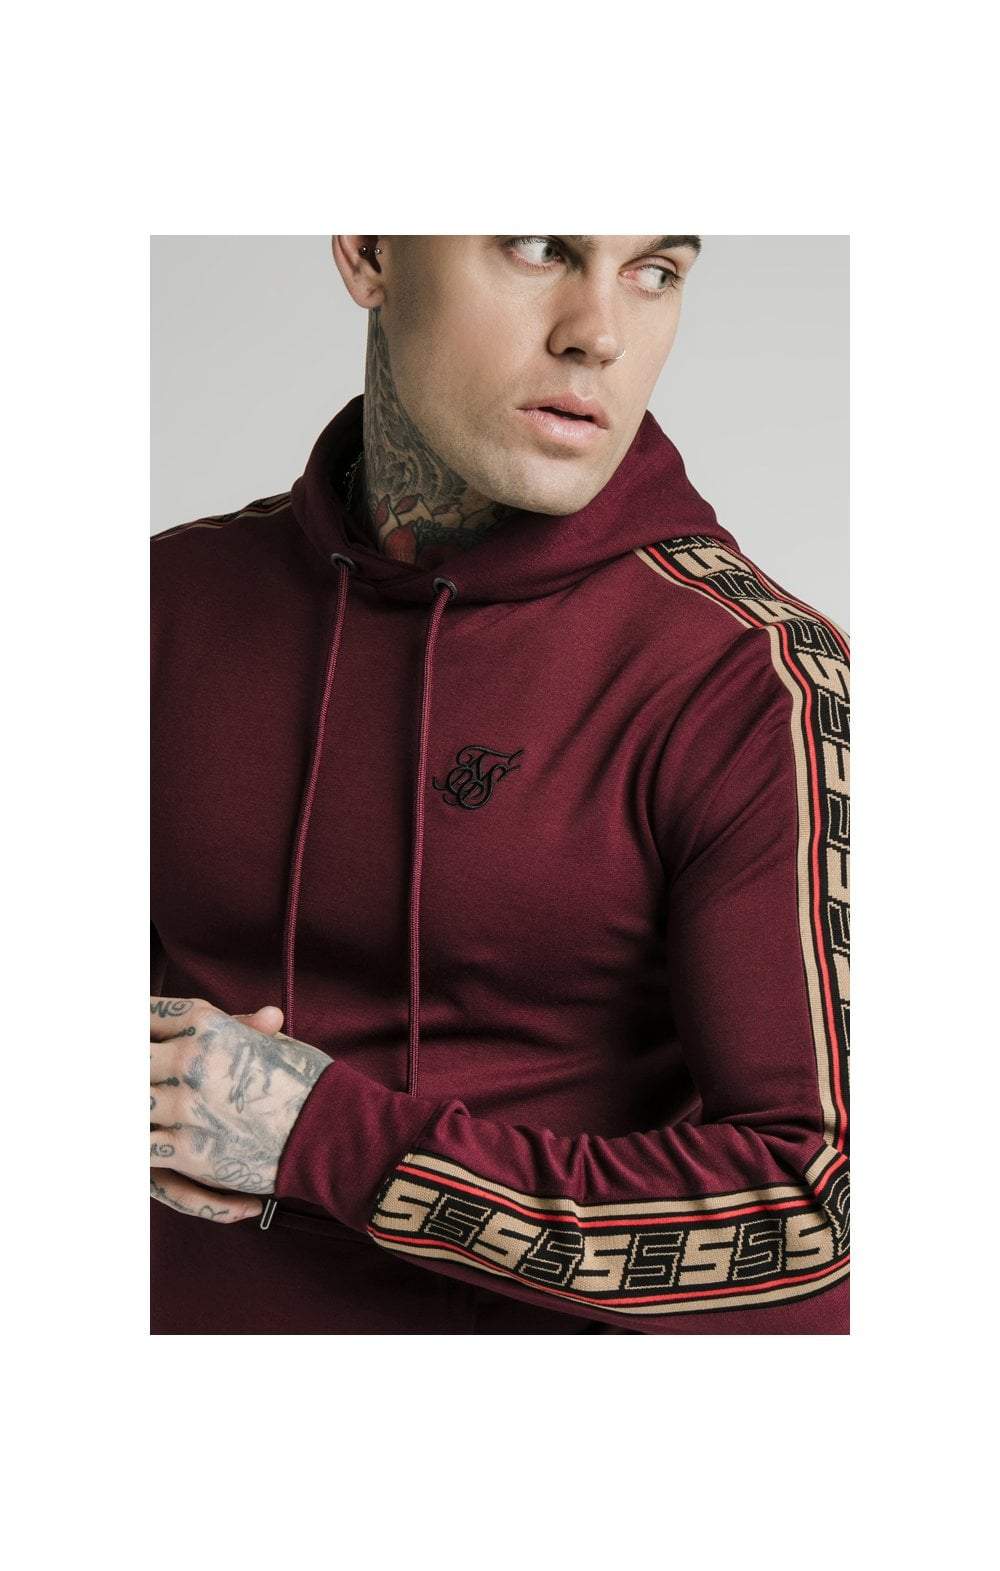 Load image into Gallery viewer, SikSilk Jacquard Retro Overhead Hoodie - Burgundy (1)